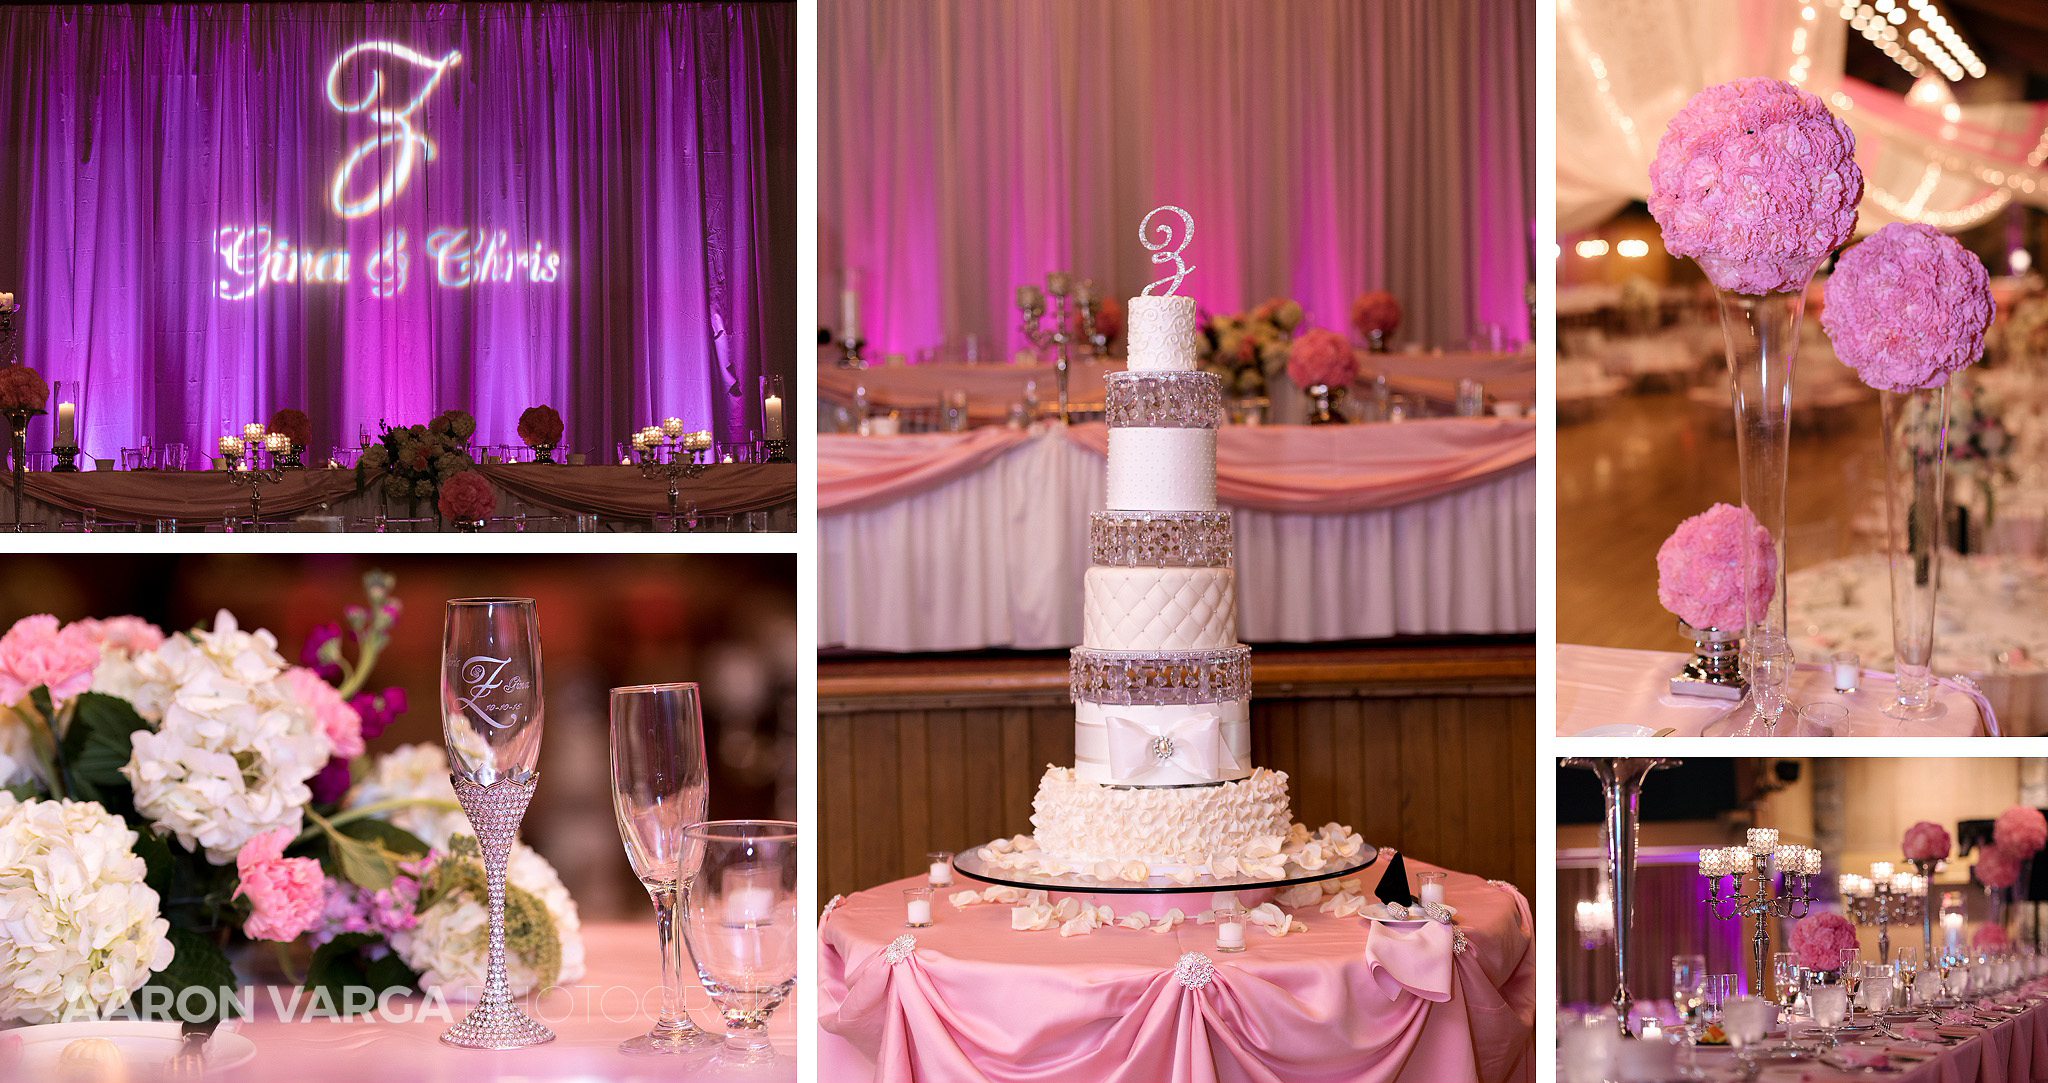 41 huge wedding cake pink purple - Gina + Chris | Oglebay Resort Wedding Photos